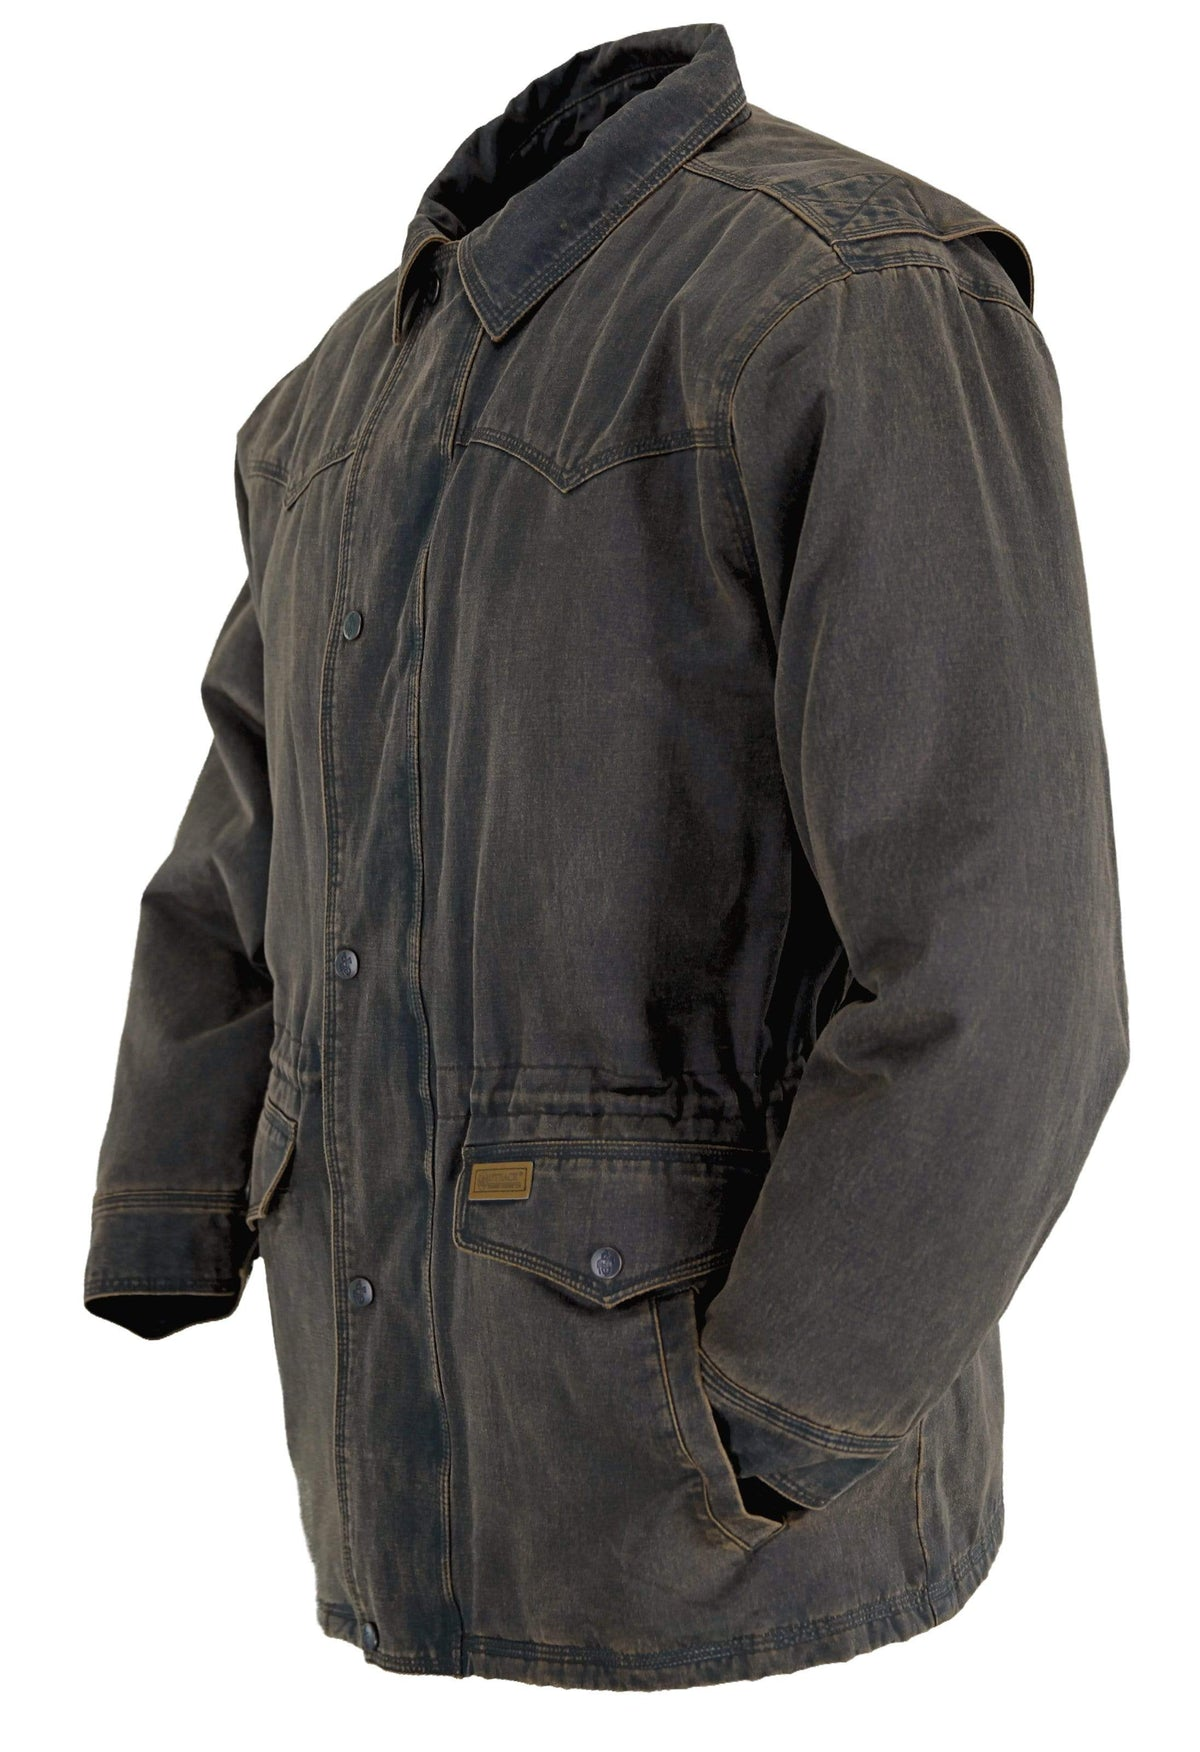 Outback Trading Company Rancher Jacket